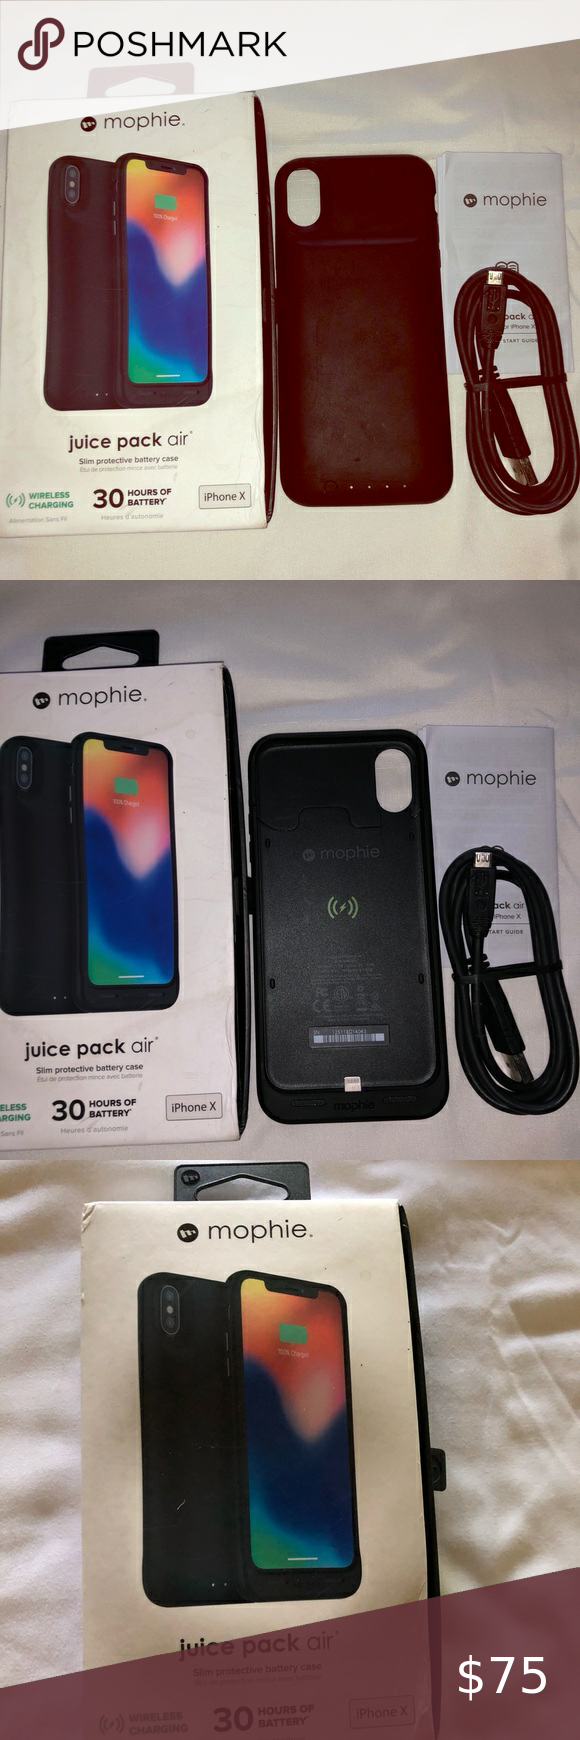 Apple Iphone X Mophie Juice Pack Case In 2020 Mophie Apple Iphone Iphone The #1 selling mobile battery case brand. pinterest